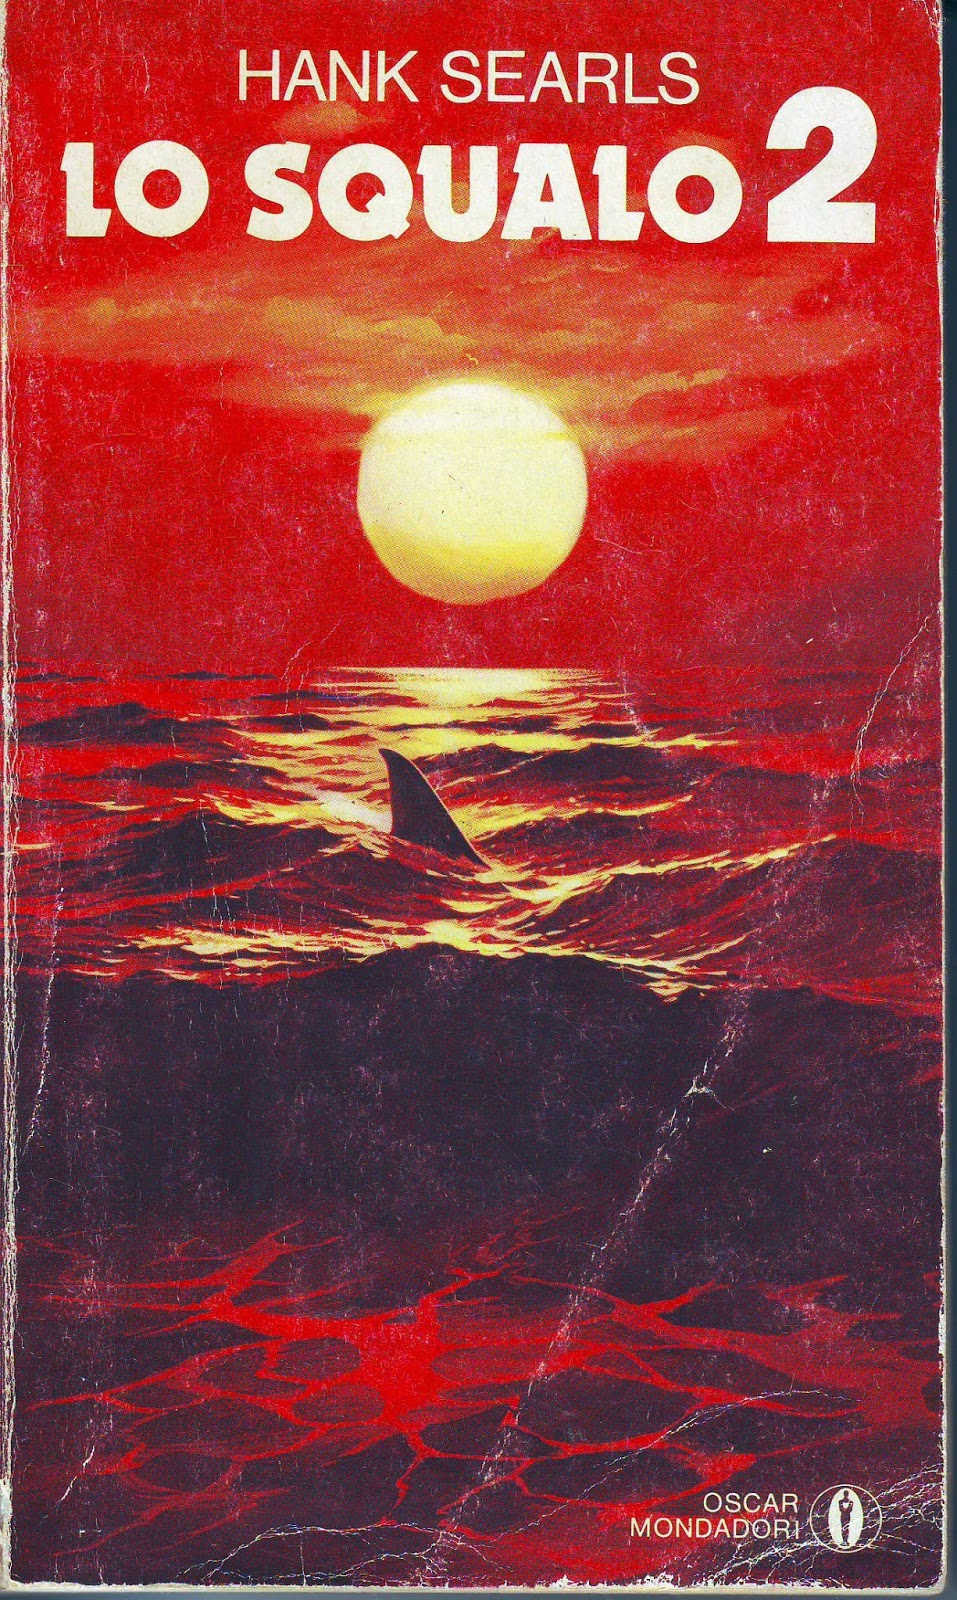 Jaws Book Cover Art ~ Jaws french p art of steven spielberg classic man eating